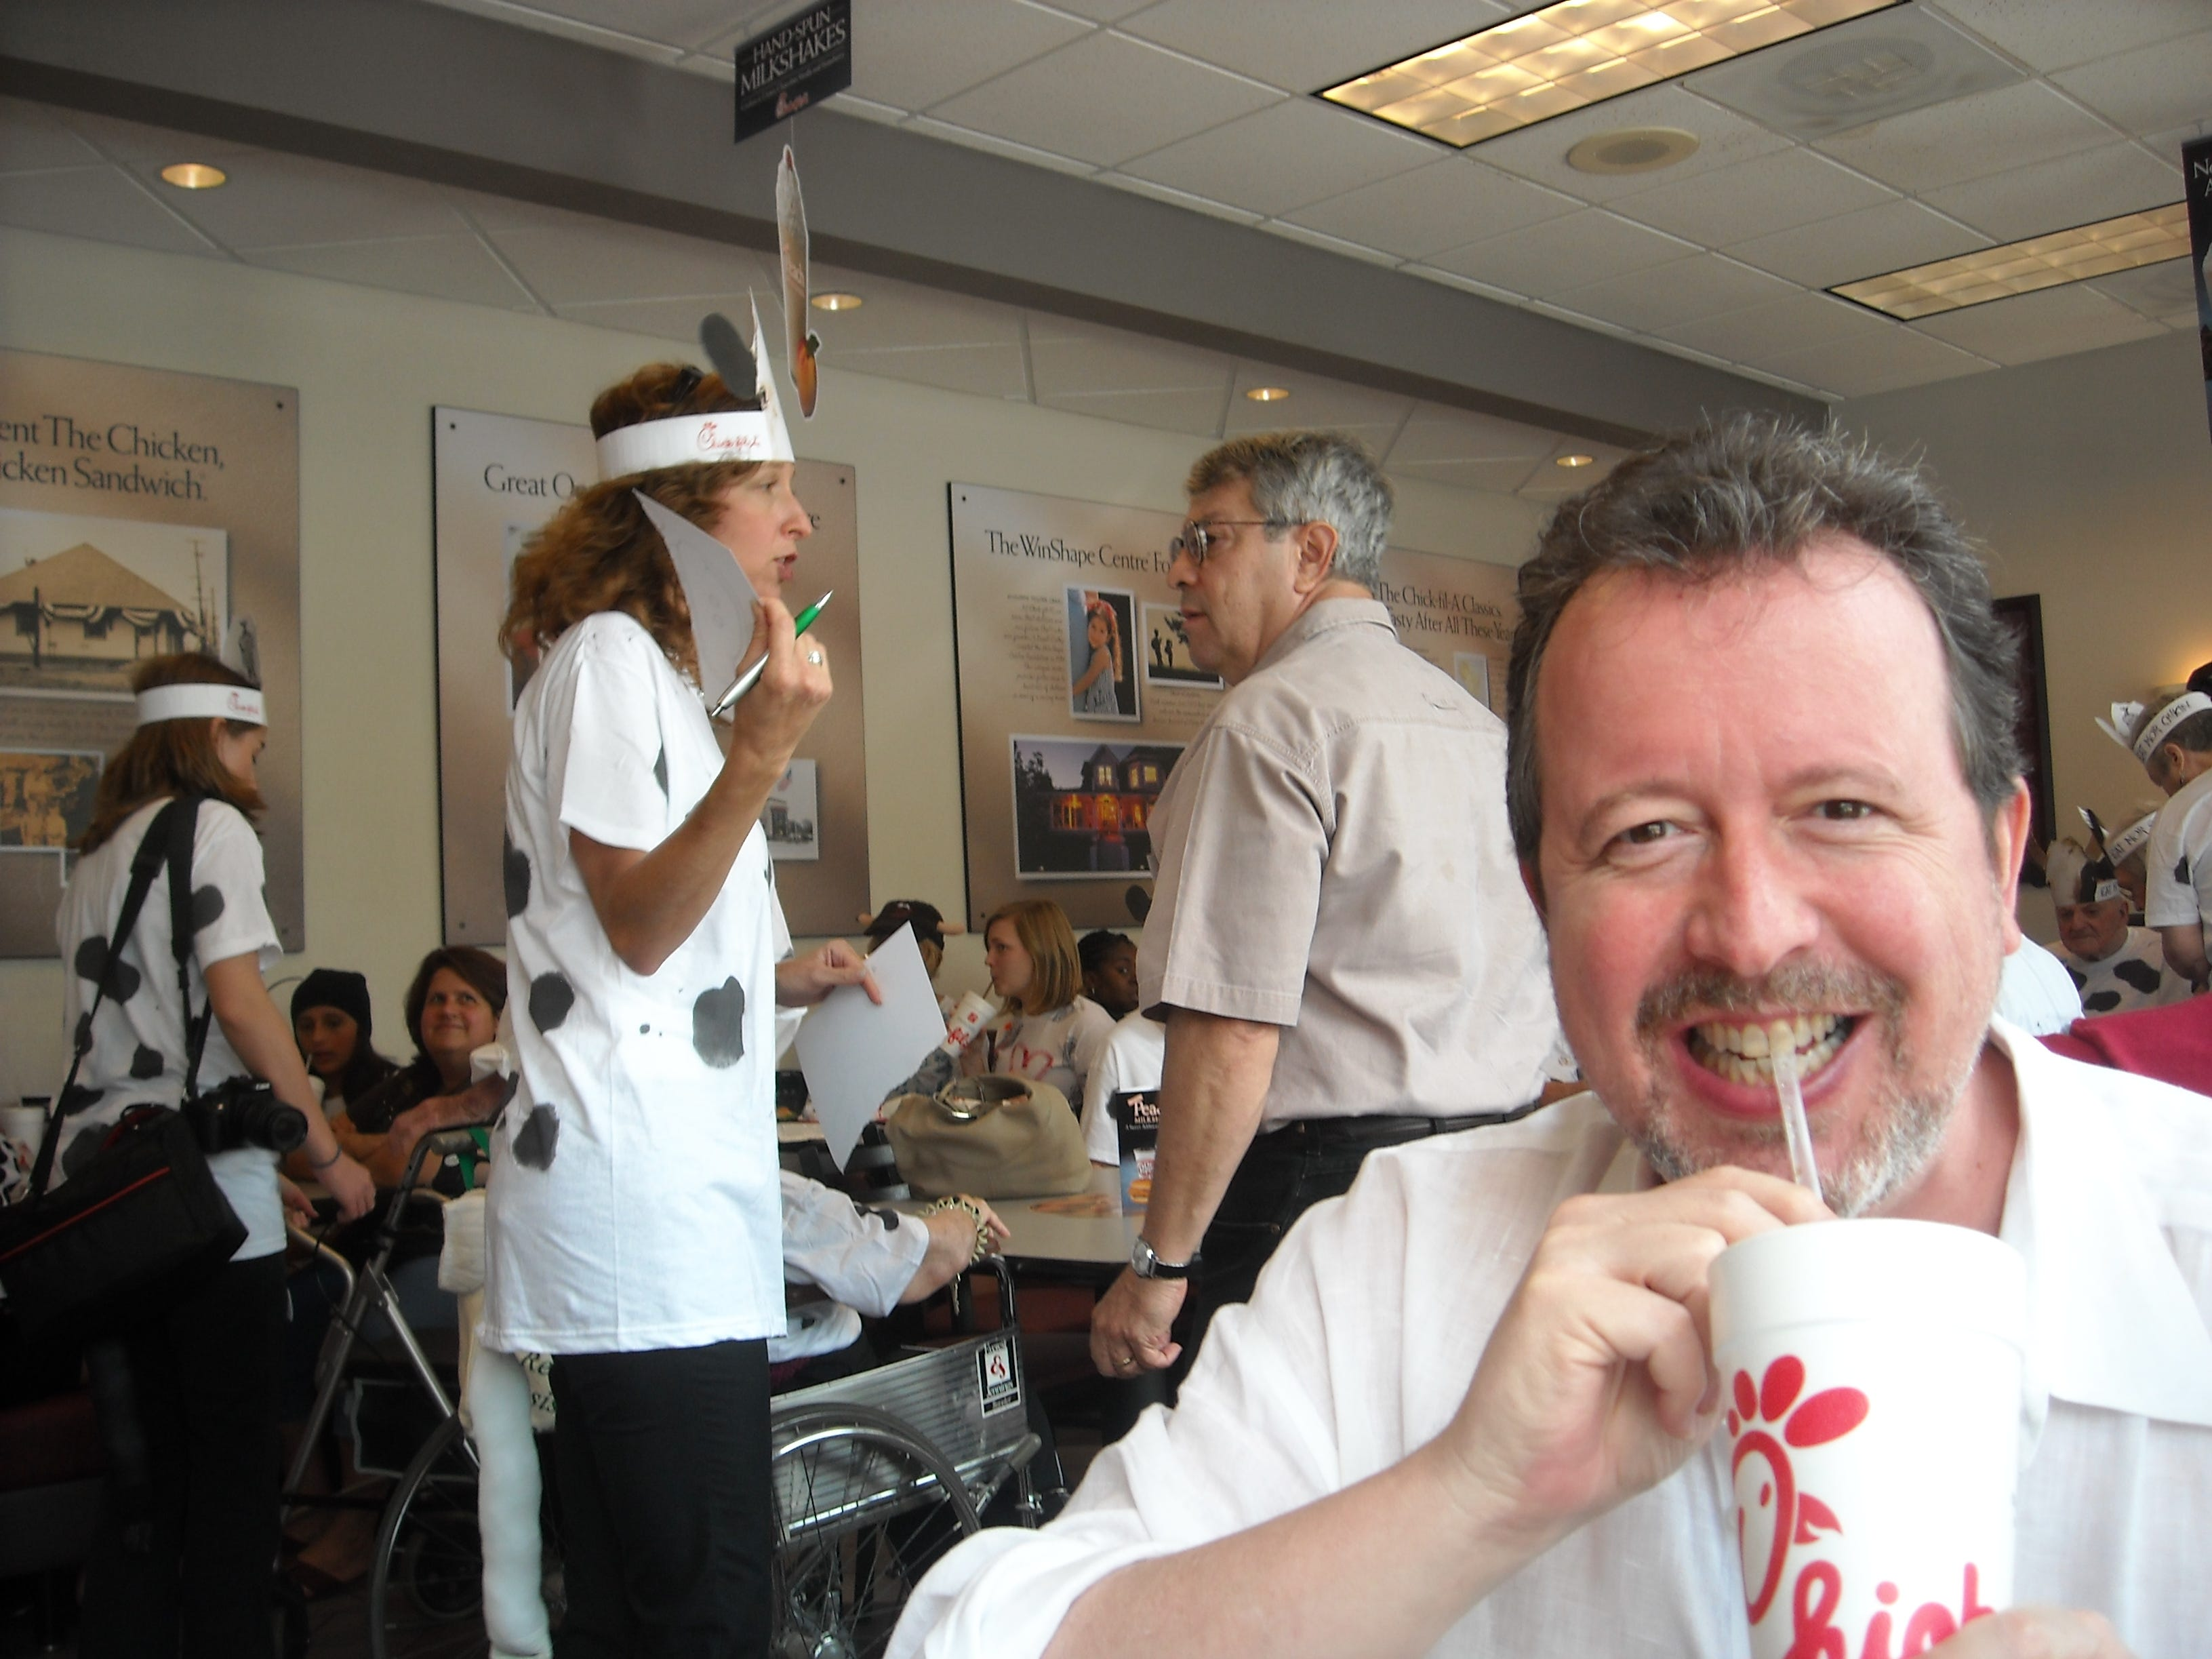 Democrat senior writer Mark Hinson was highly amused by the folks who turned out for Cow Appreciation Day at the Capital Circle NE Chick-fil-A.